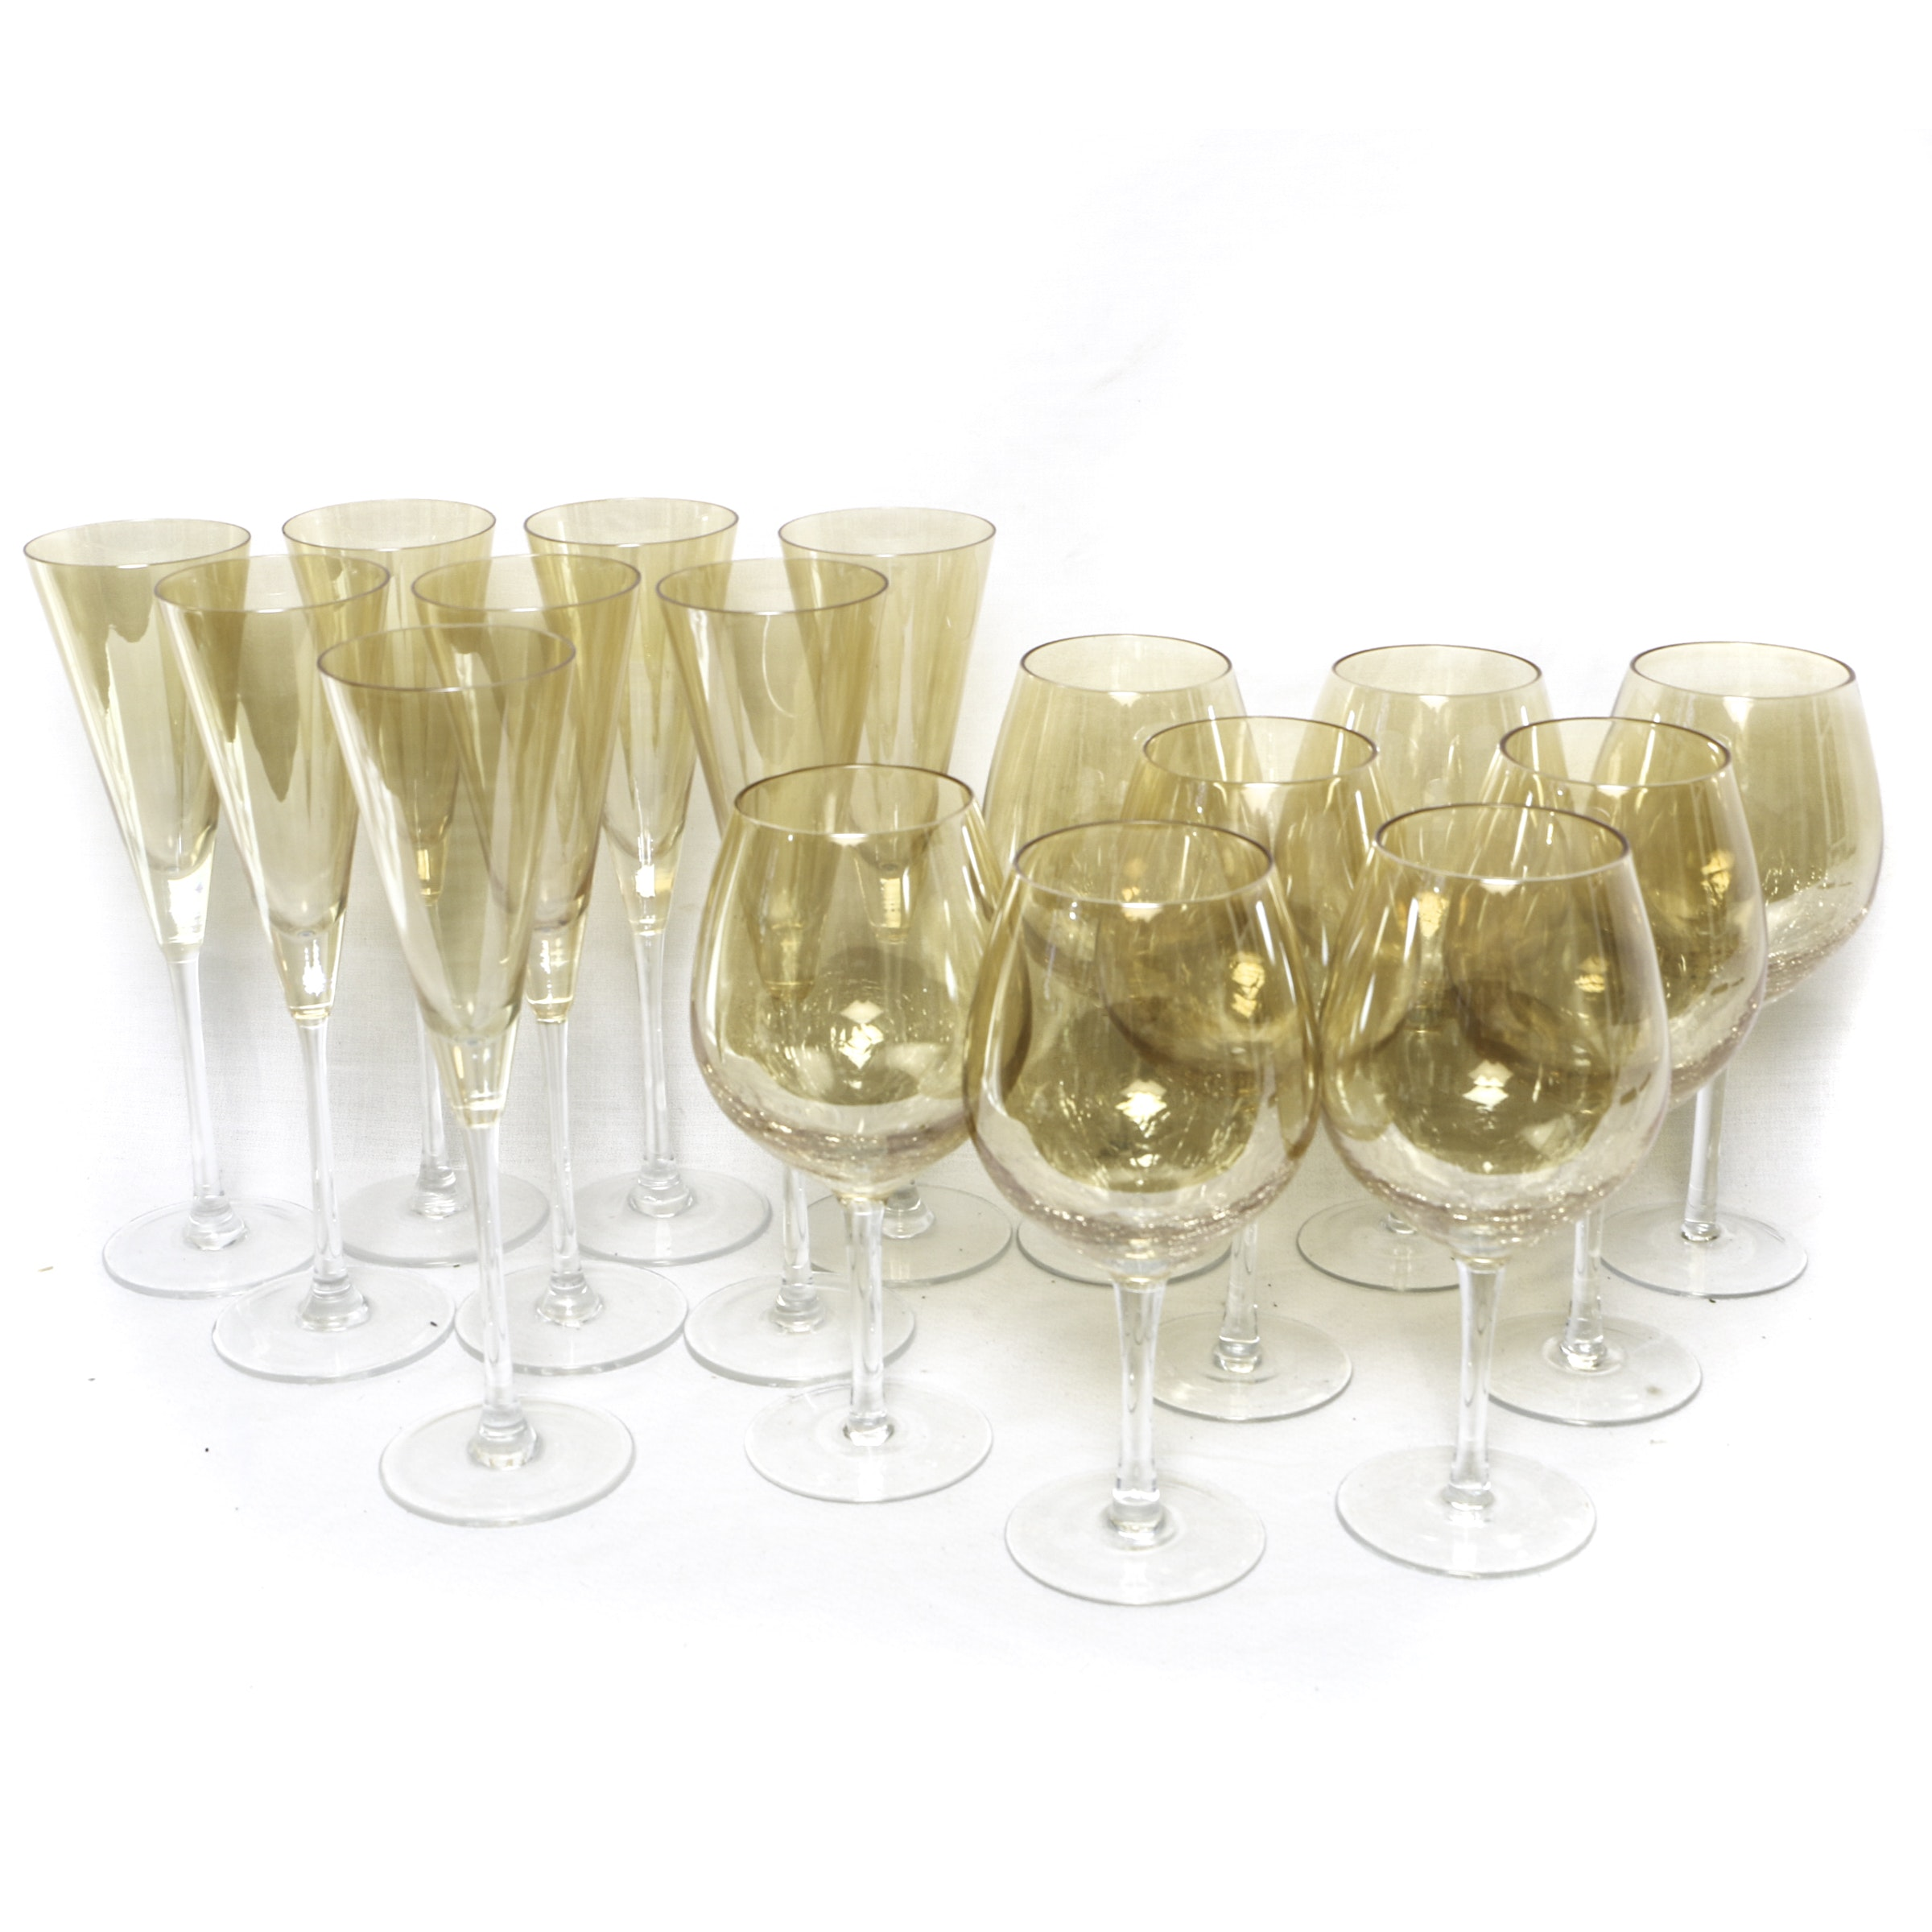 Amber Wine Glasses and Toasting Flutes